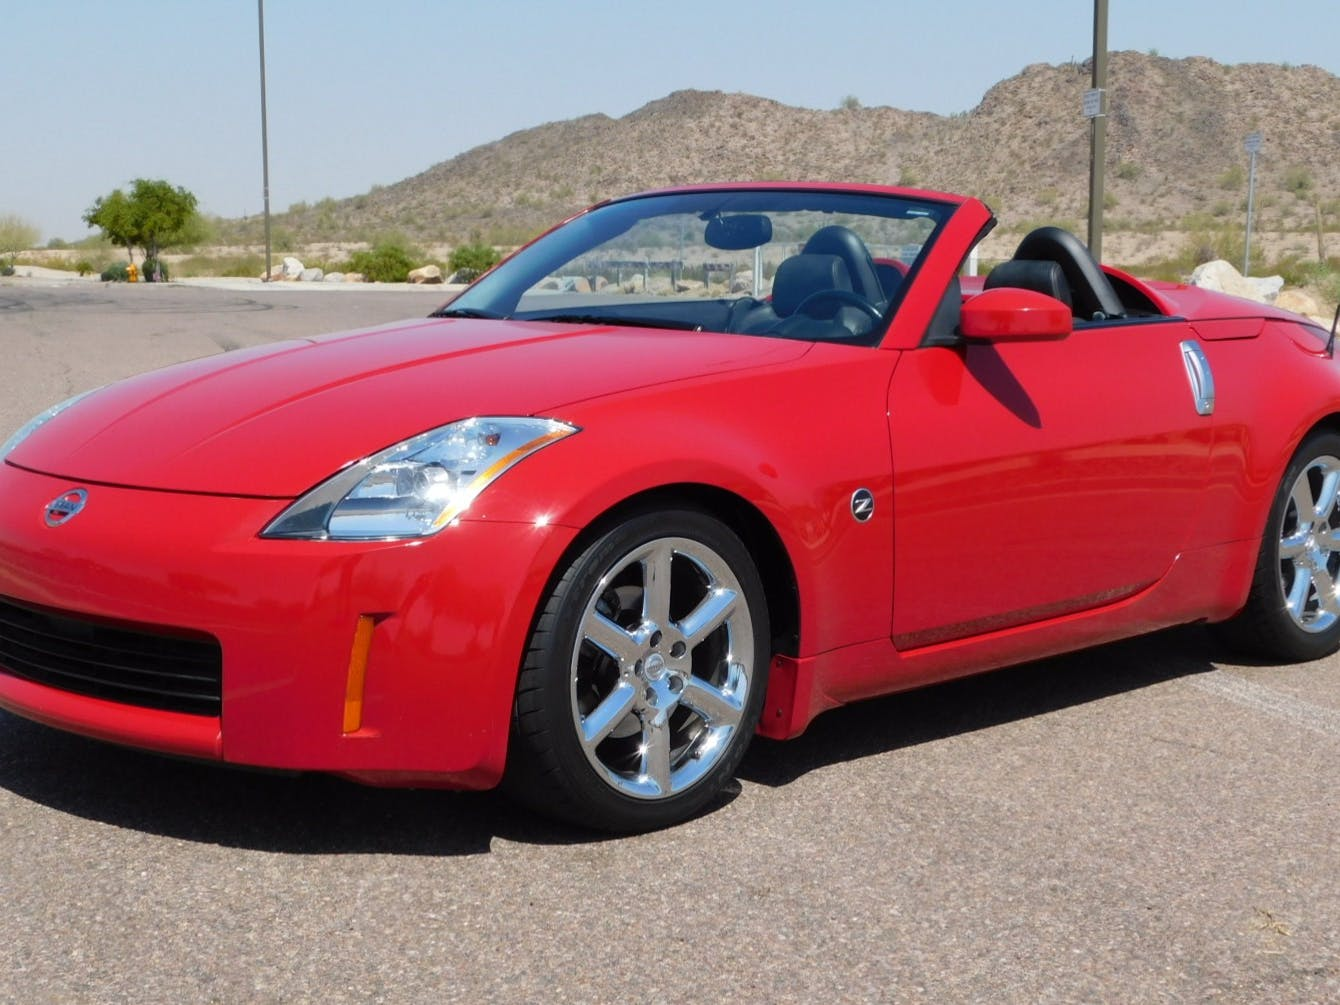 2004 Nissan 350Z Touring Roadster 6-Speed